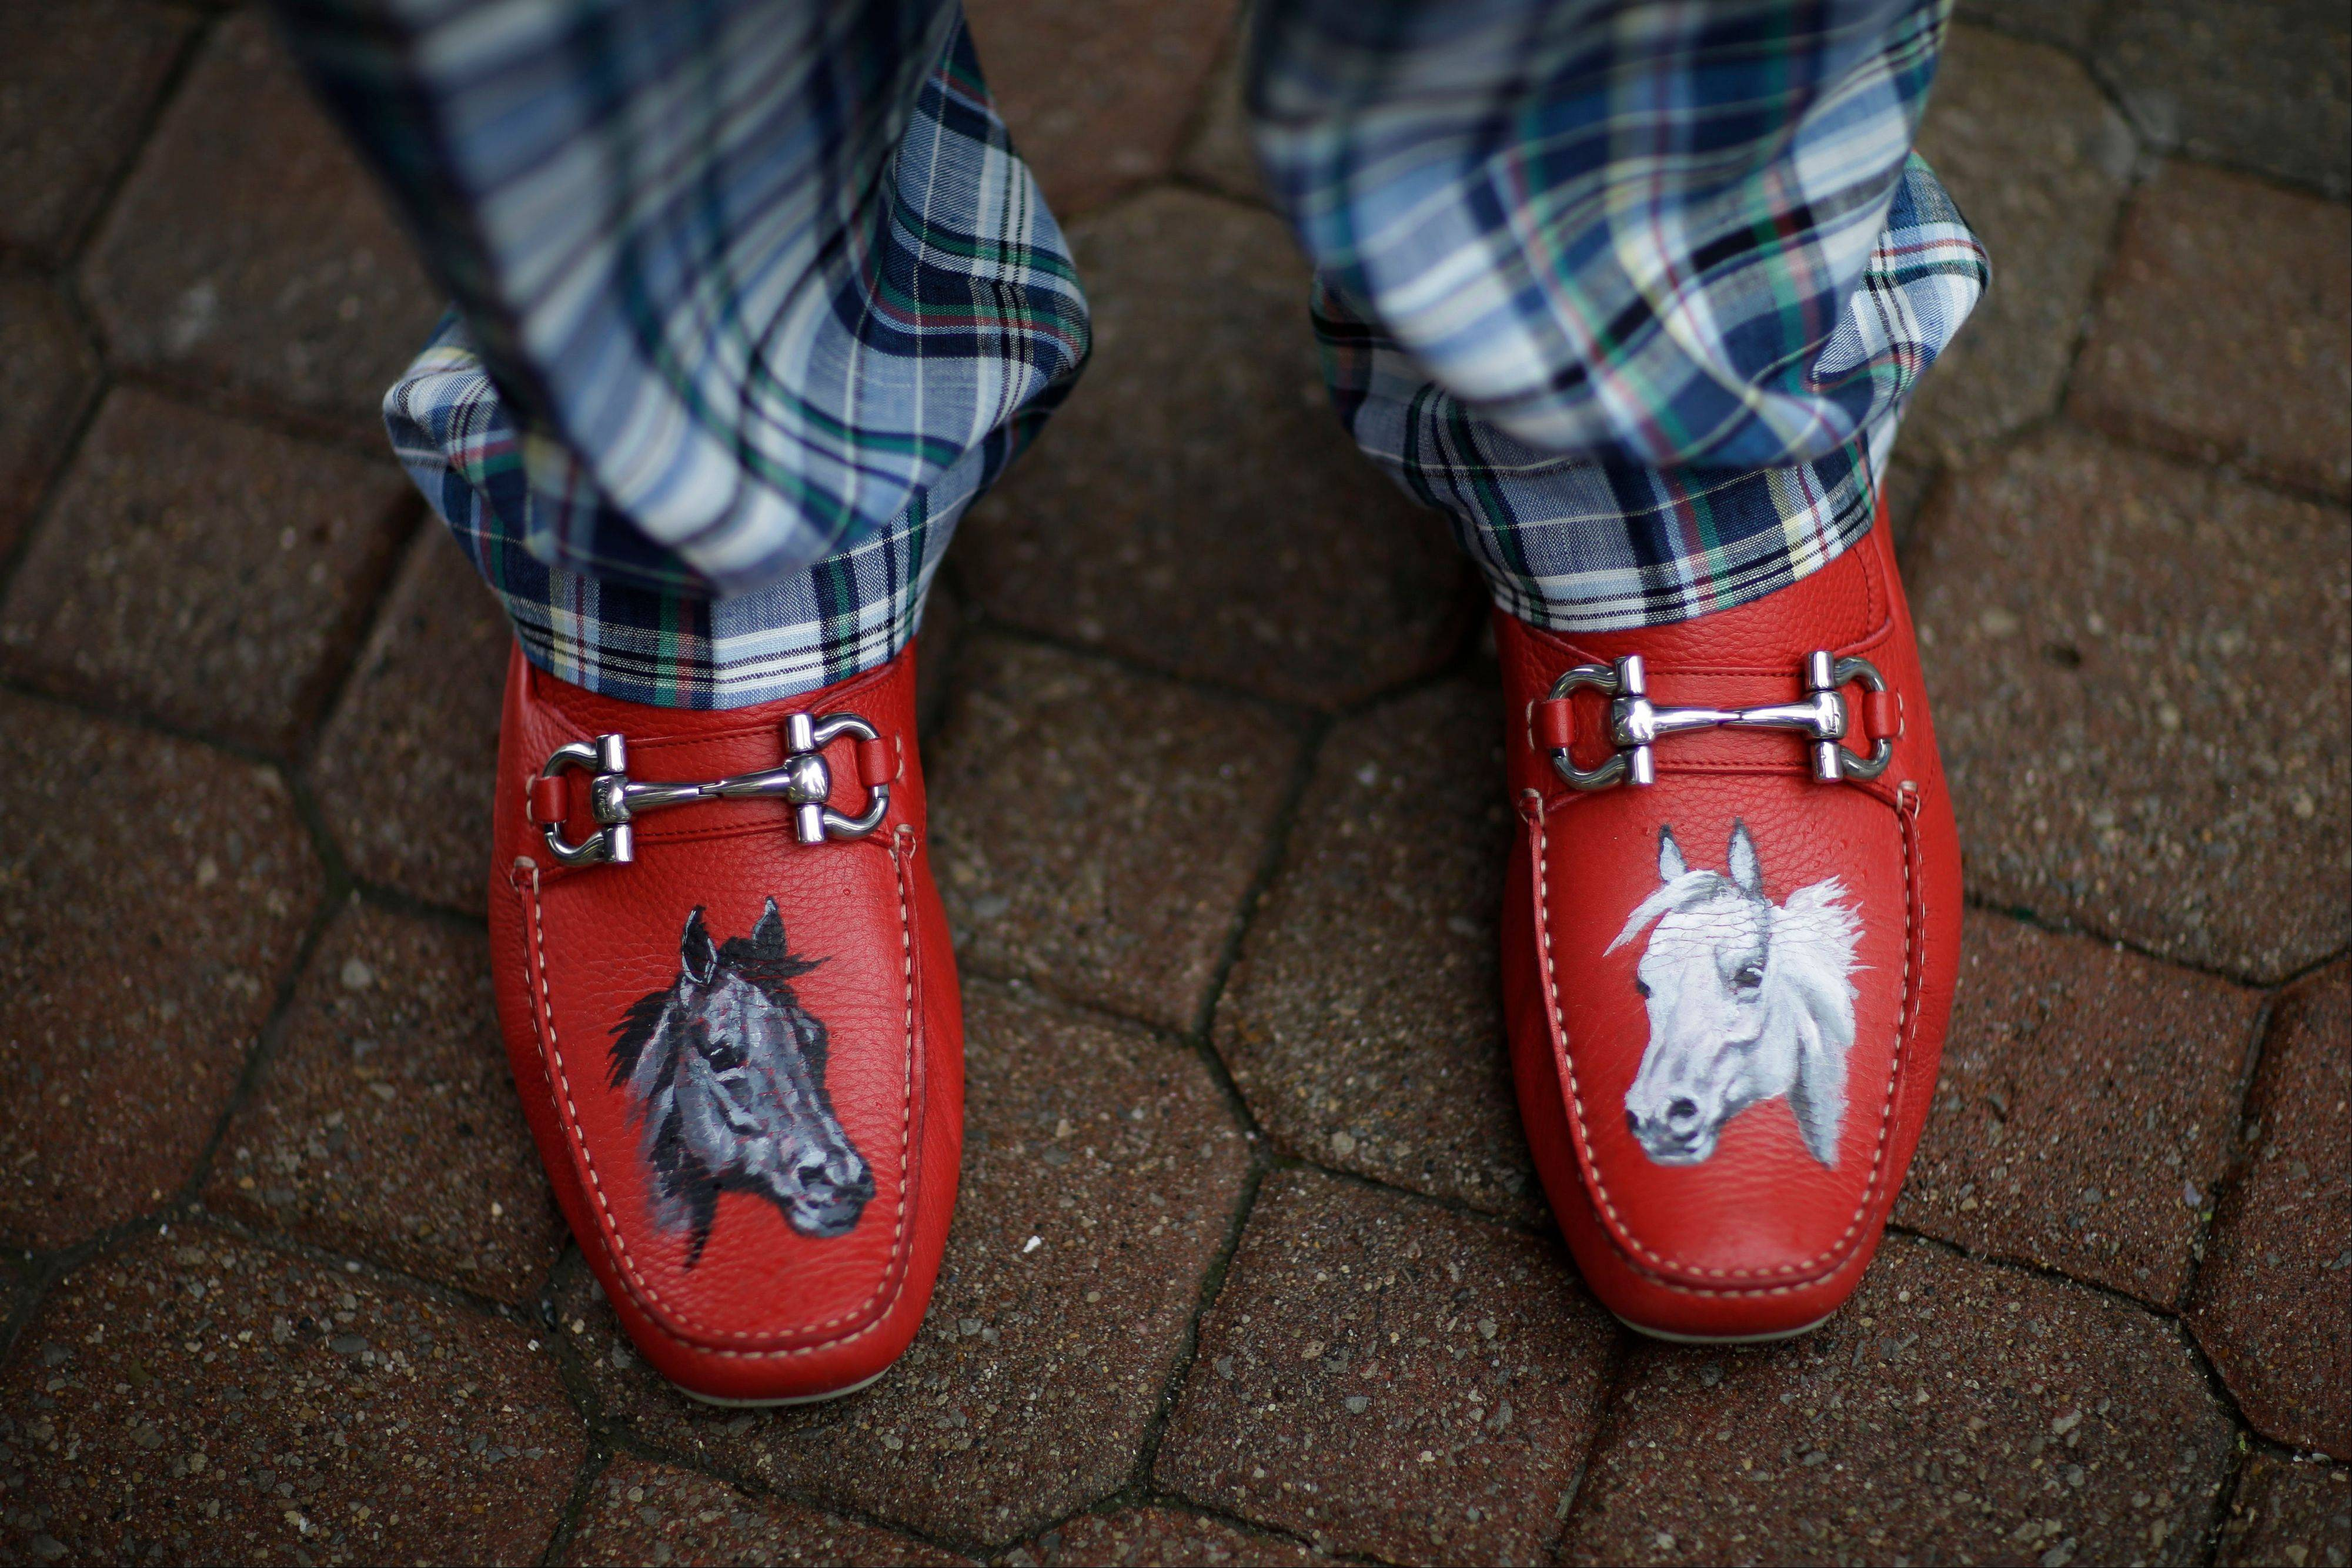 James Cowheard, from Las Vegas, Nev., shows off his fancy shoes before the running of the 139th Kentucky Derby.